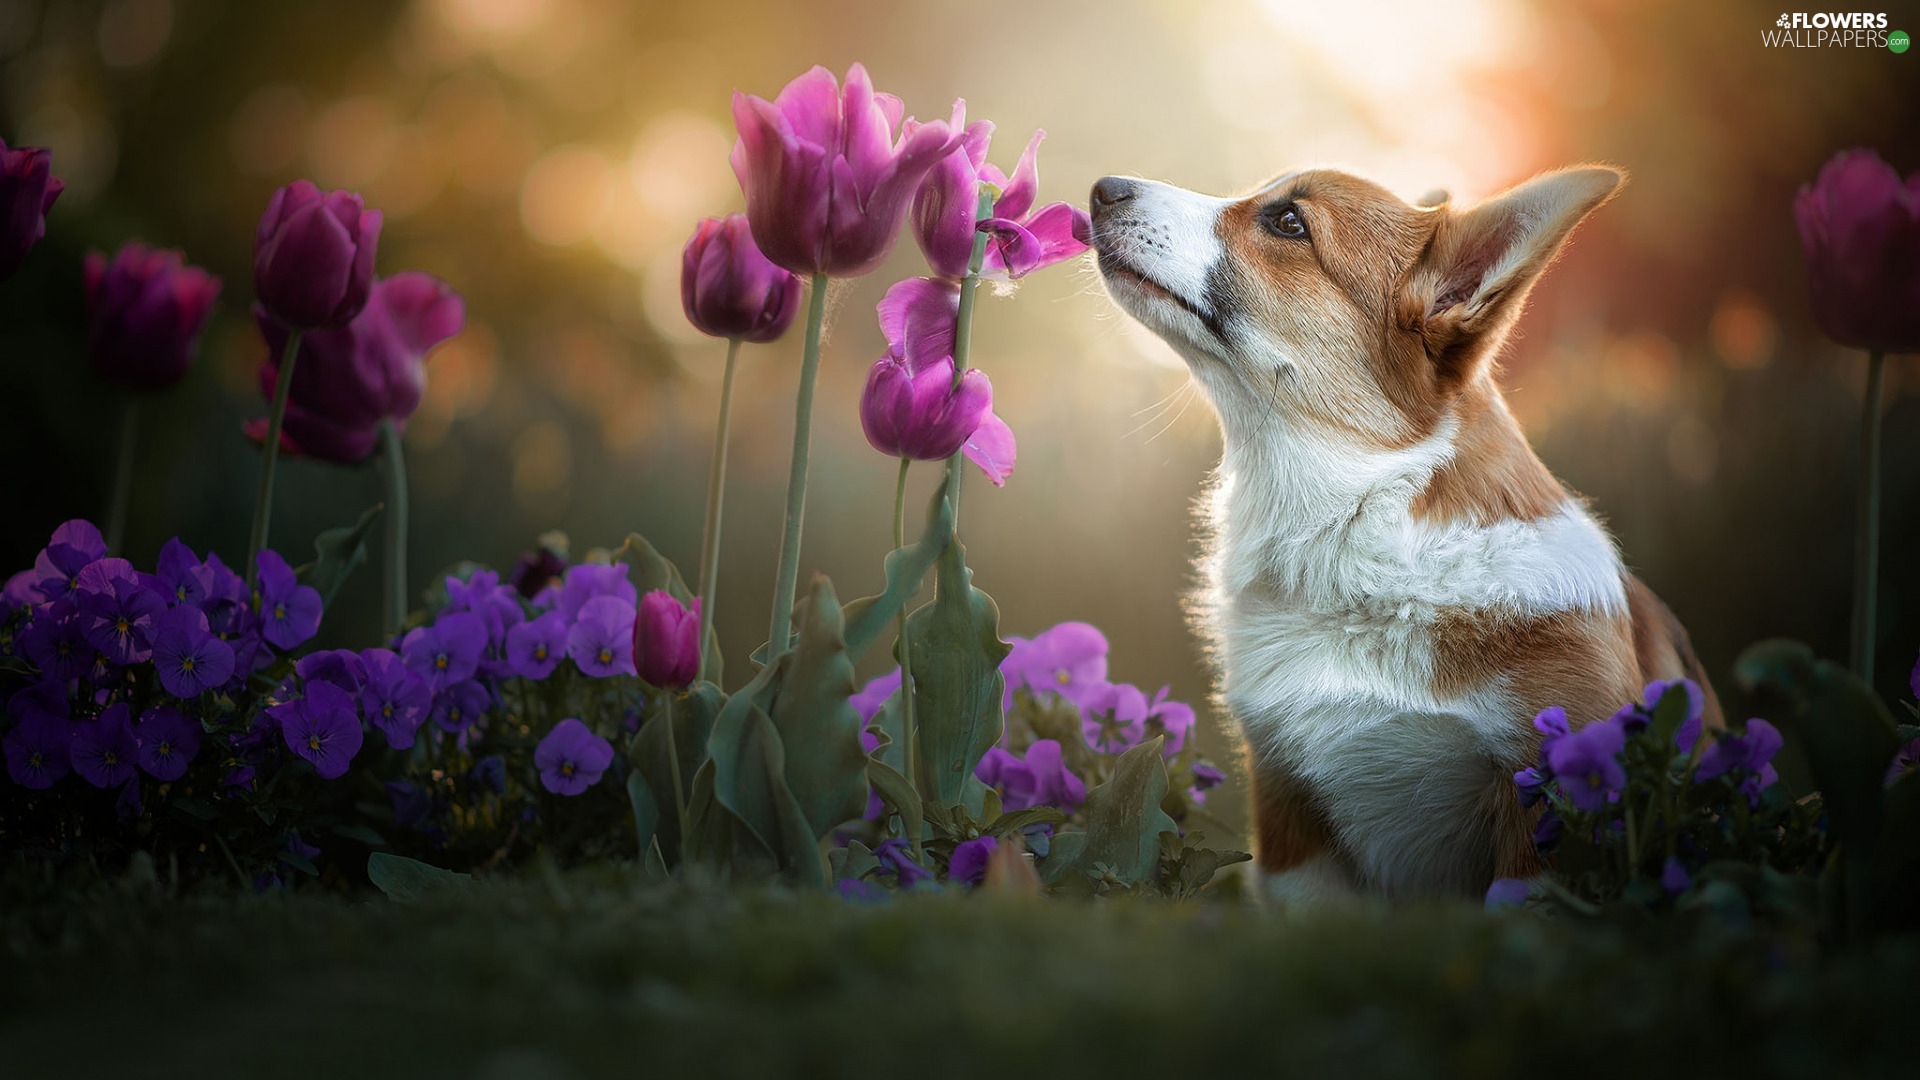 Tulips, pansies, Welsh corgi pembroke, Flowers, dog